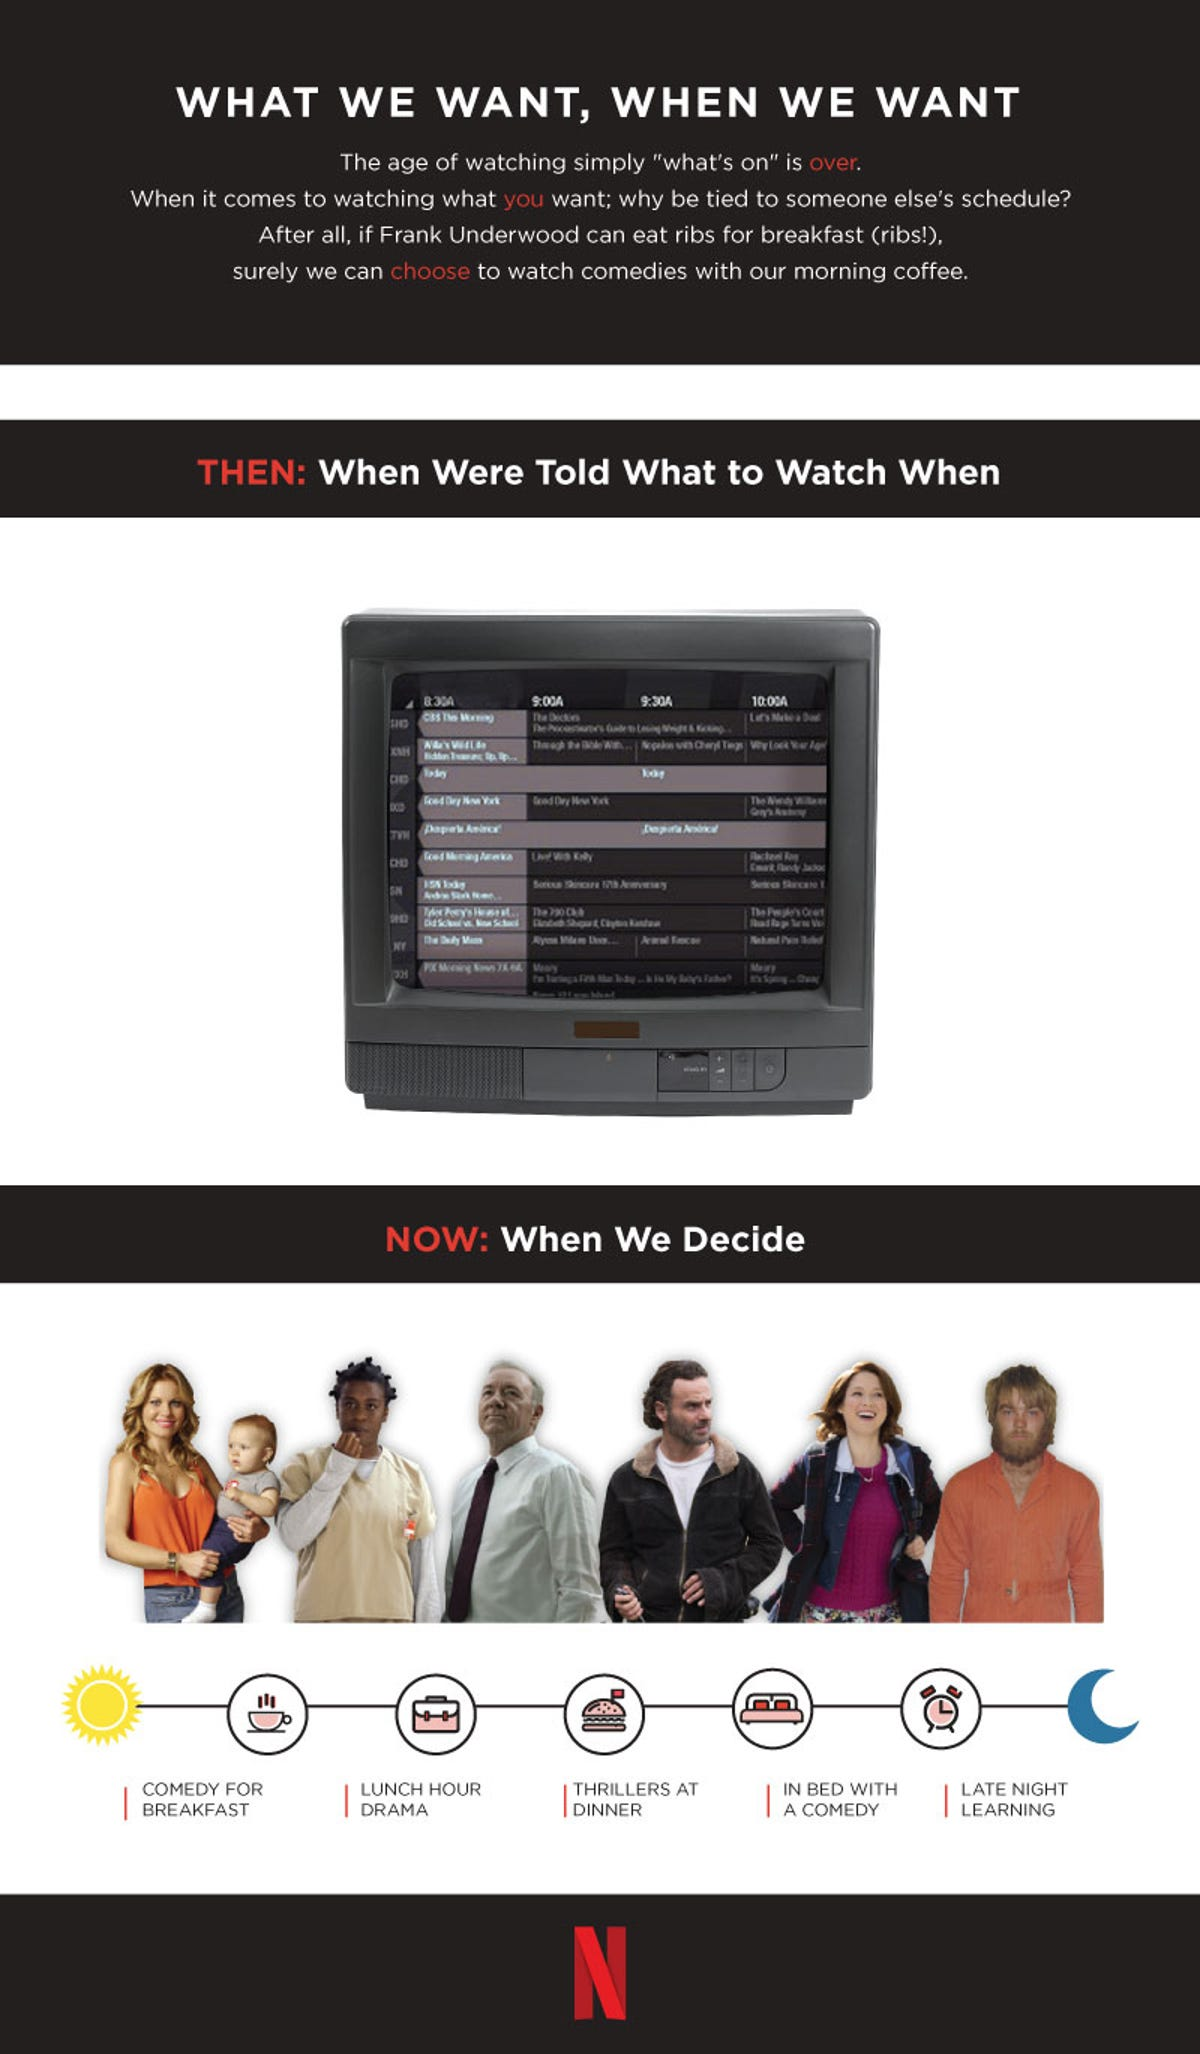 Netflix viewers watch different genres at different times